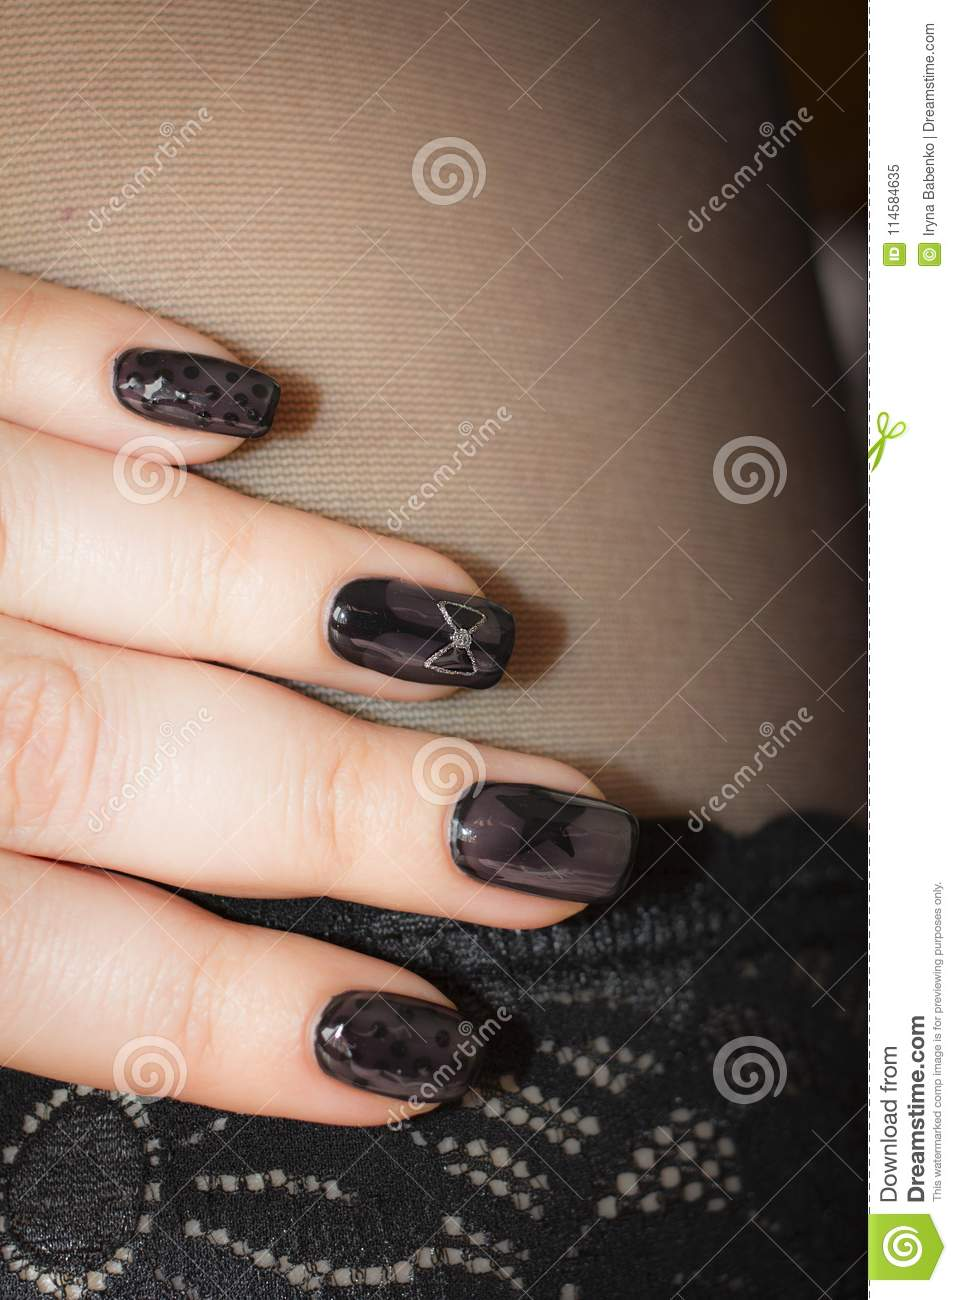 Designer Nails In The Tone Of Stockings Stock Image - Image of ...